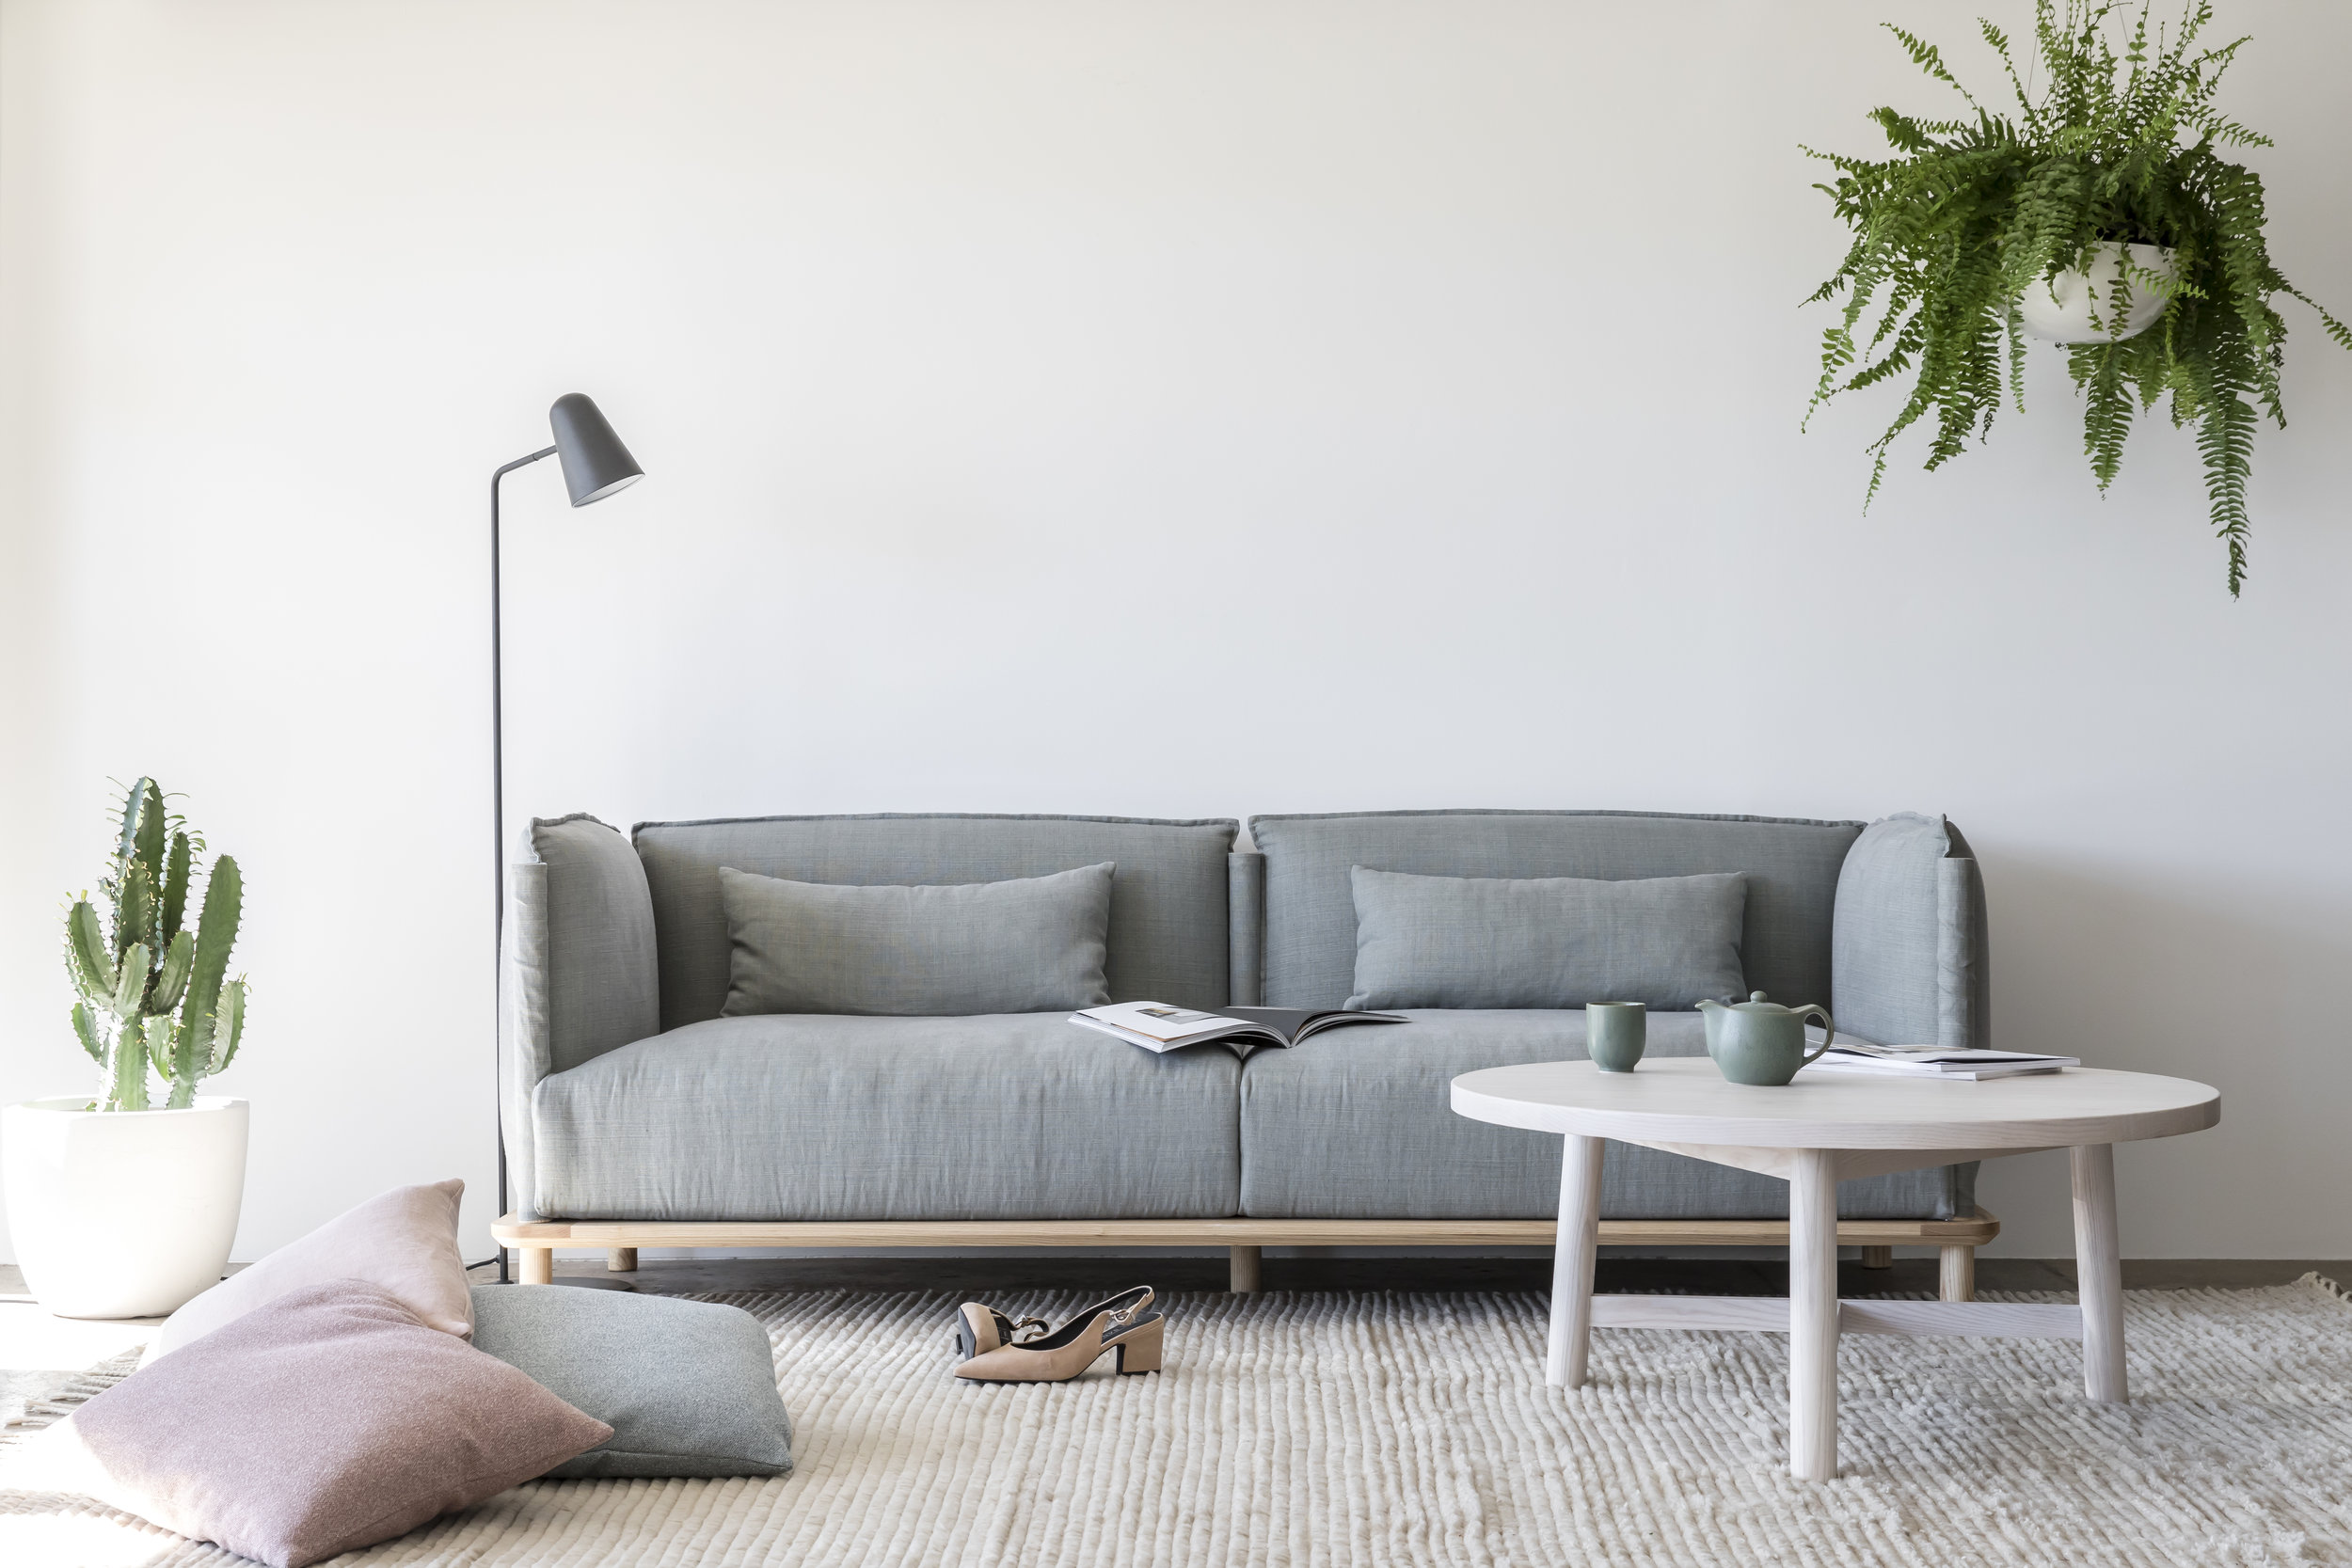 australian made sofas - We are experts at creating beautifully designed, handcrafted sofas and upholstered items. Using time honoured manufacturing techniques, our sofas are locally made to order in our Sydney workshop.